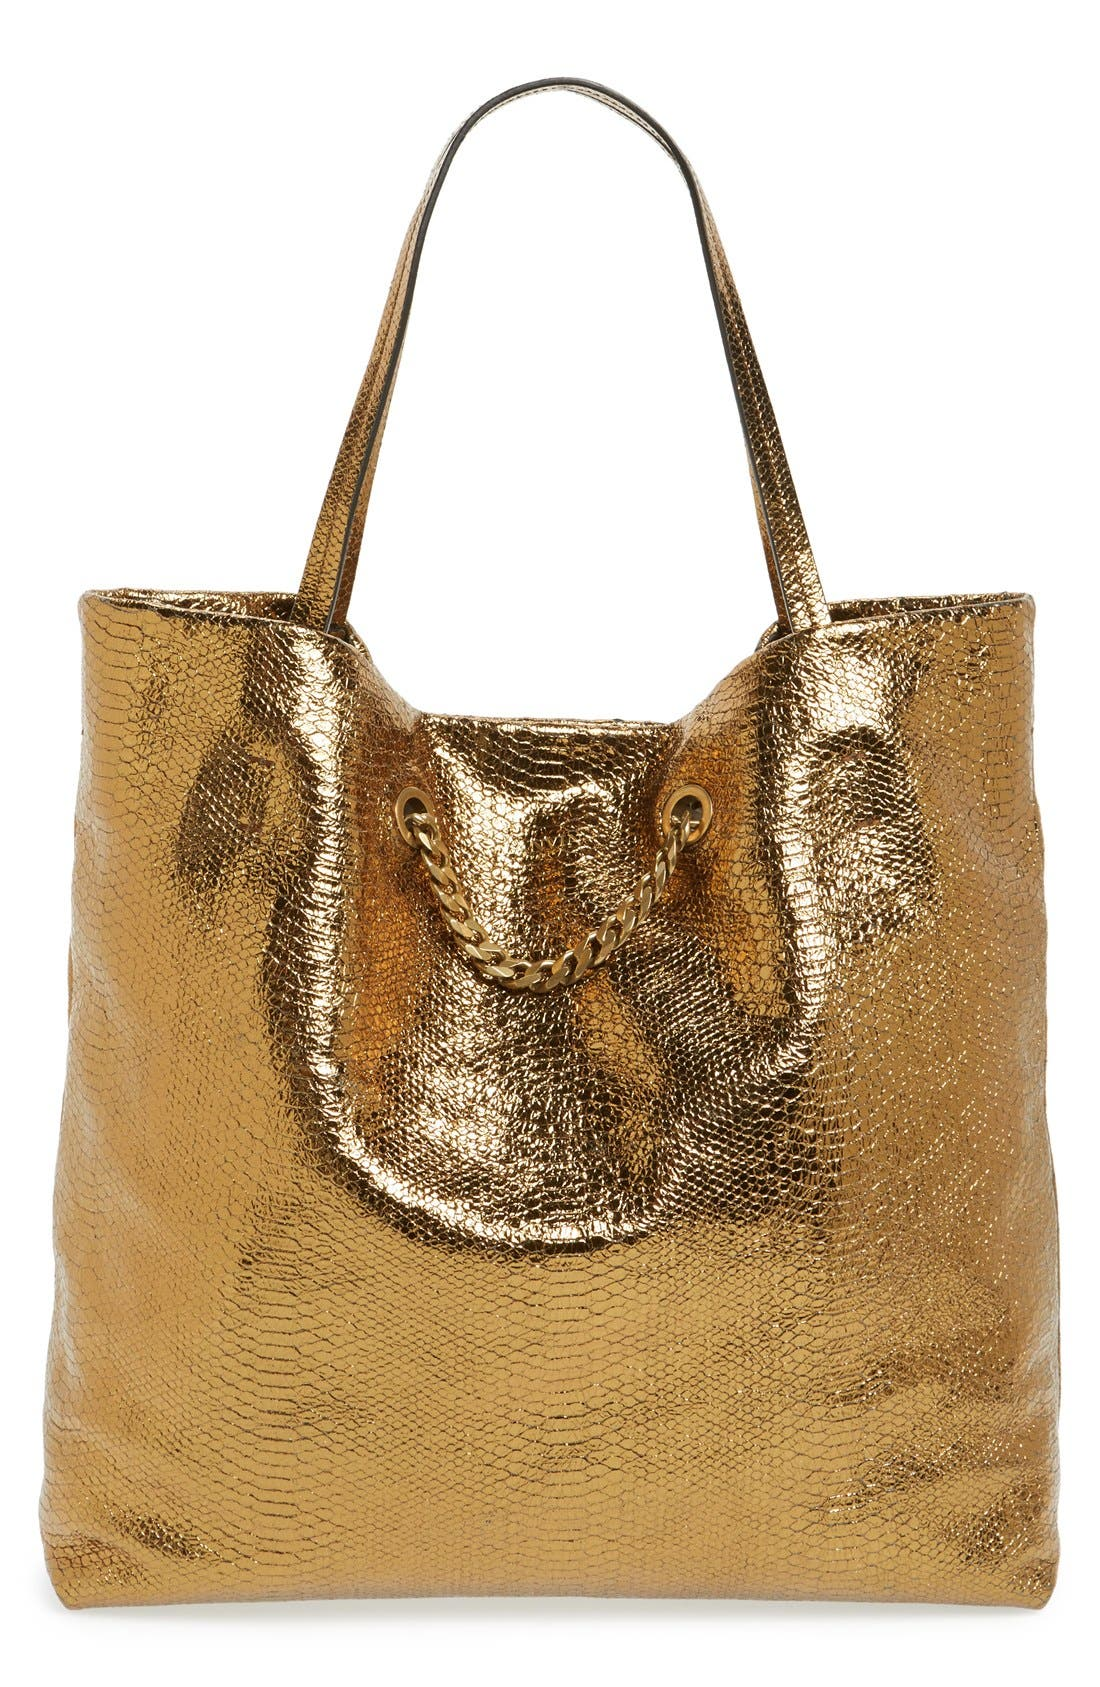 Alternate Image 1 Selected - Lanvin 'Medium Carry Me' Snake Embossed Metallic Leather Tote